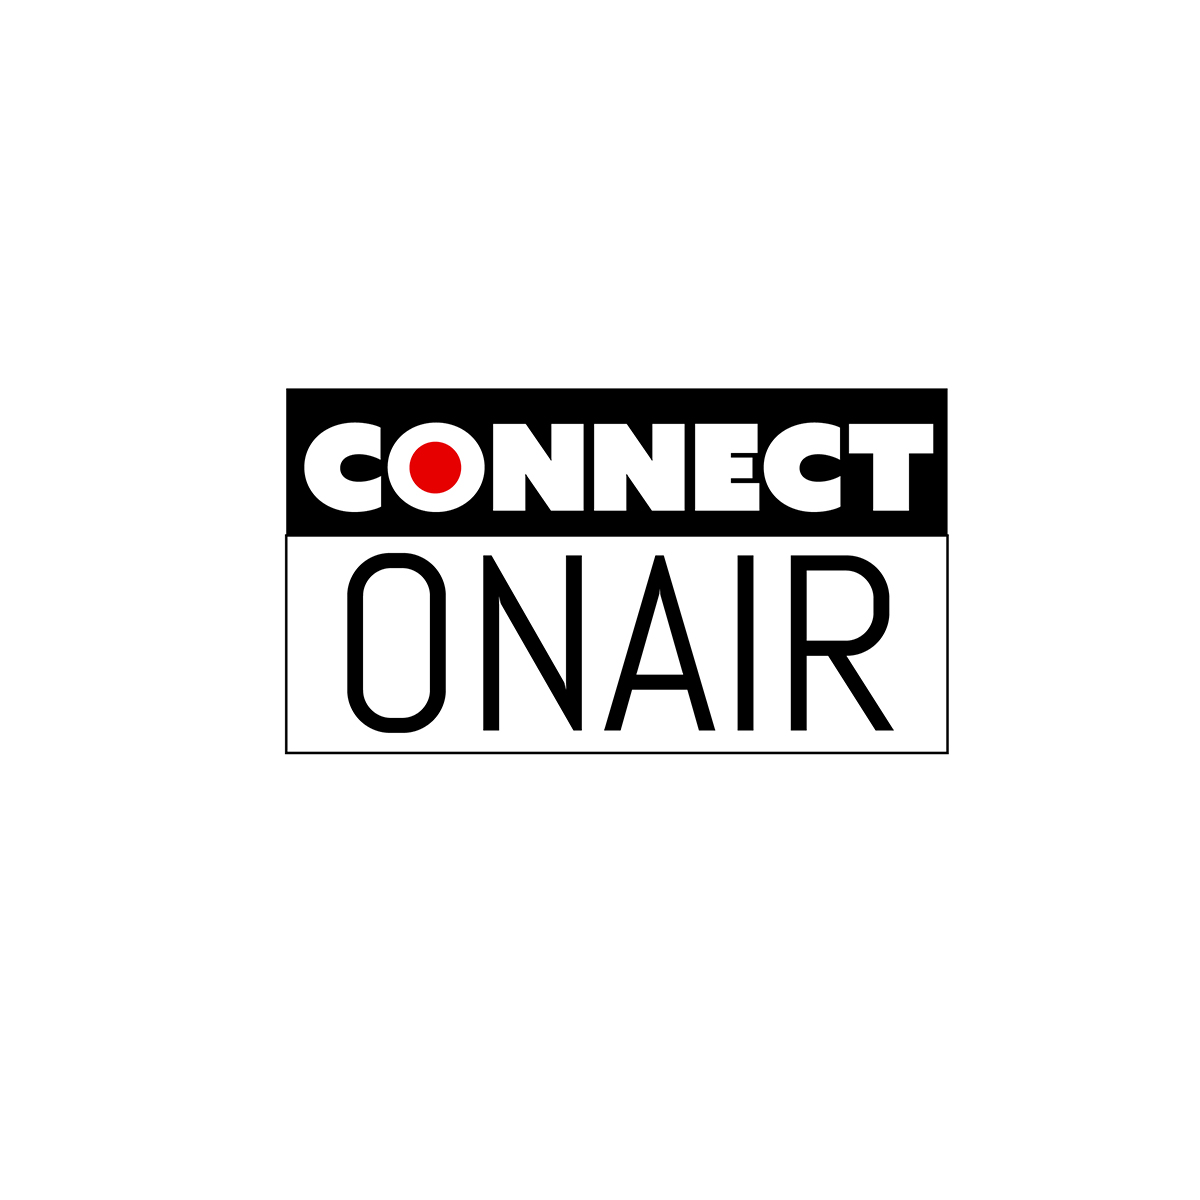 Connectonair